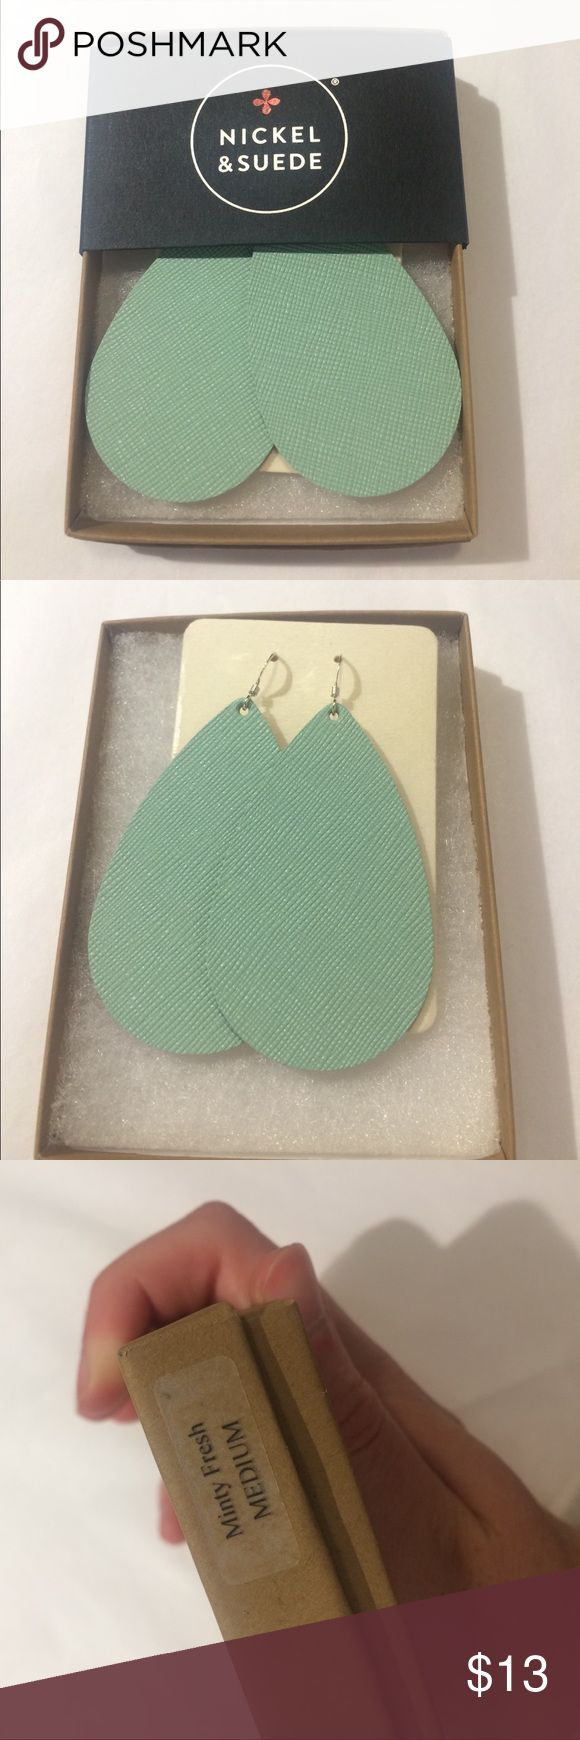 Nickel and Suede Mint earrings New. Never worn. Nickel & Suede Jewelry Earrings